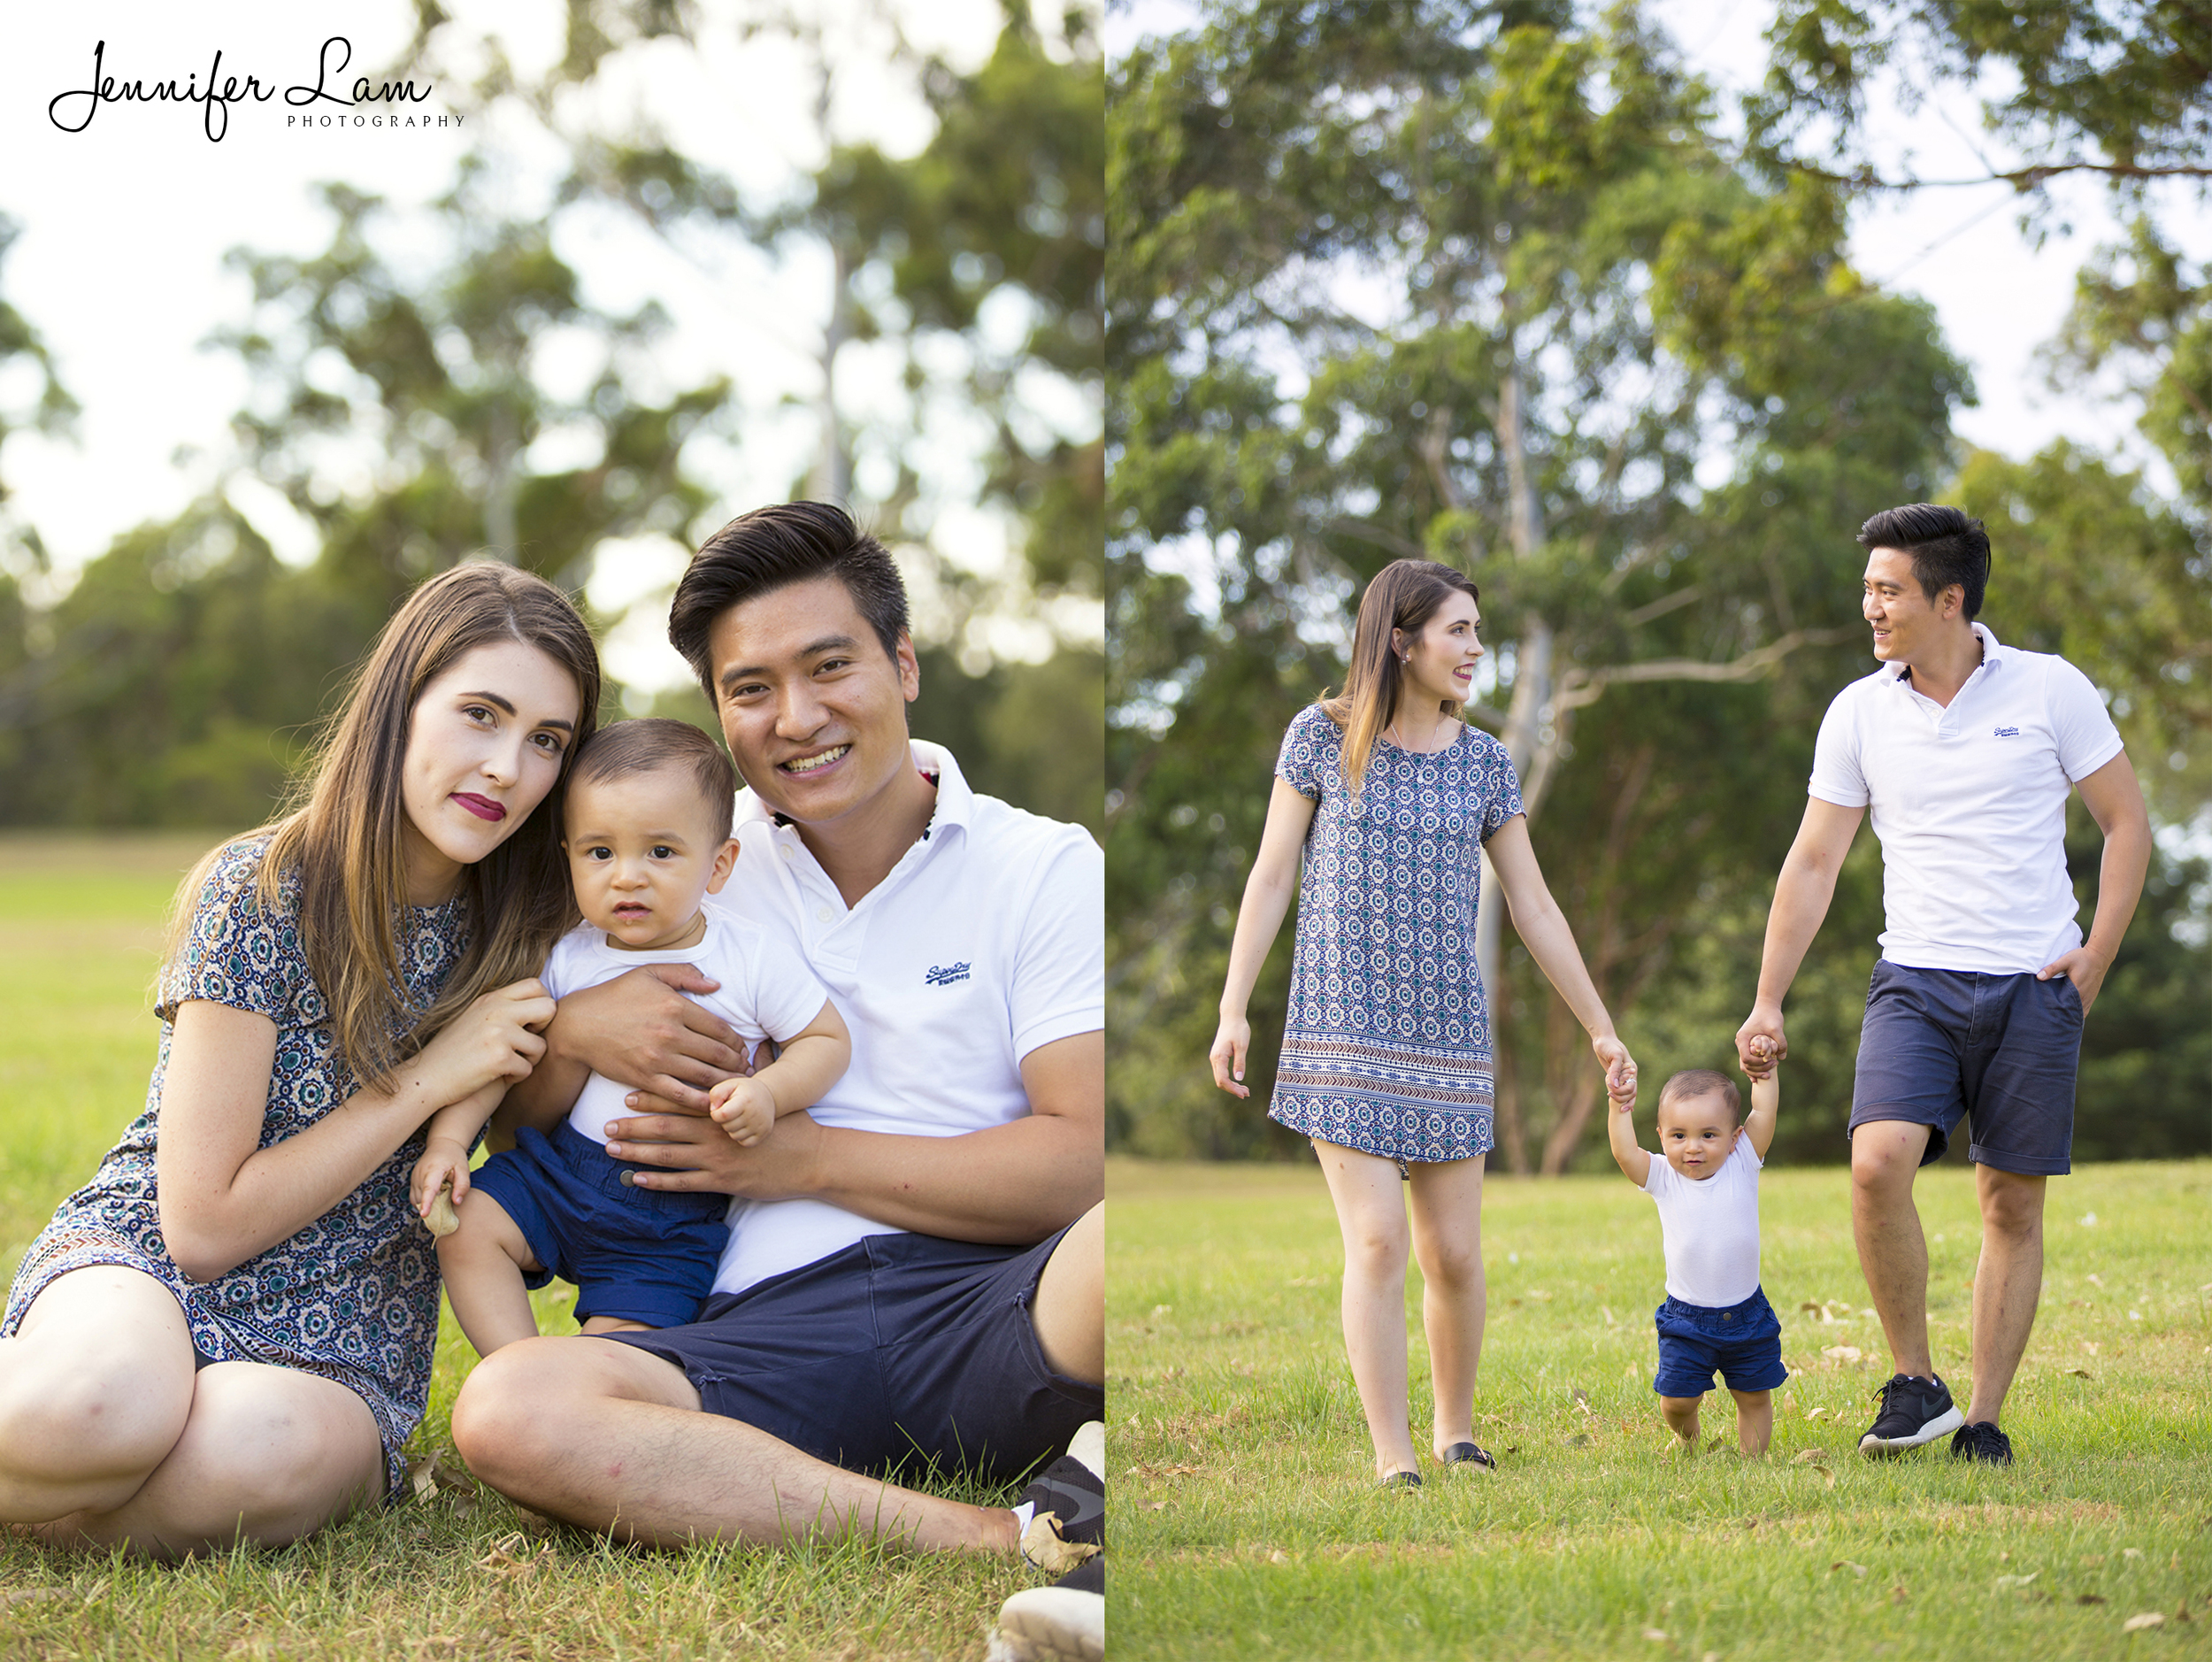 First Birthday - Sydney Family Portrait Photography - Jennifer Lam Photography (3).jpg